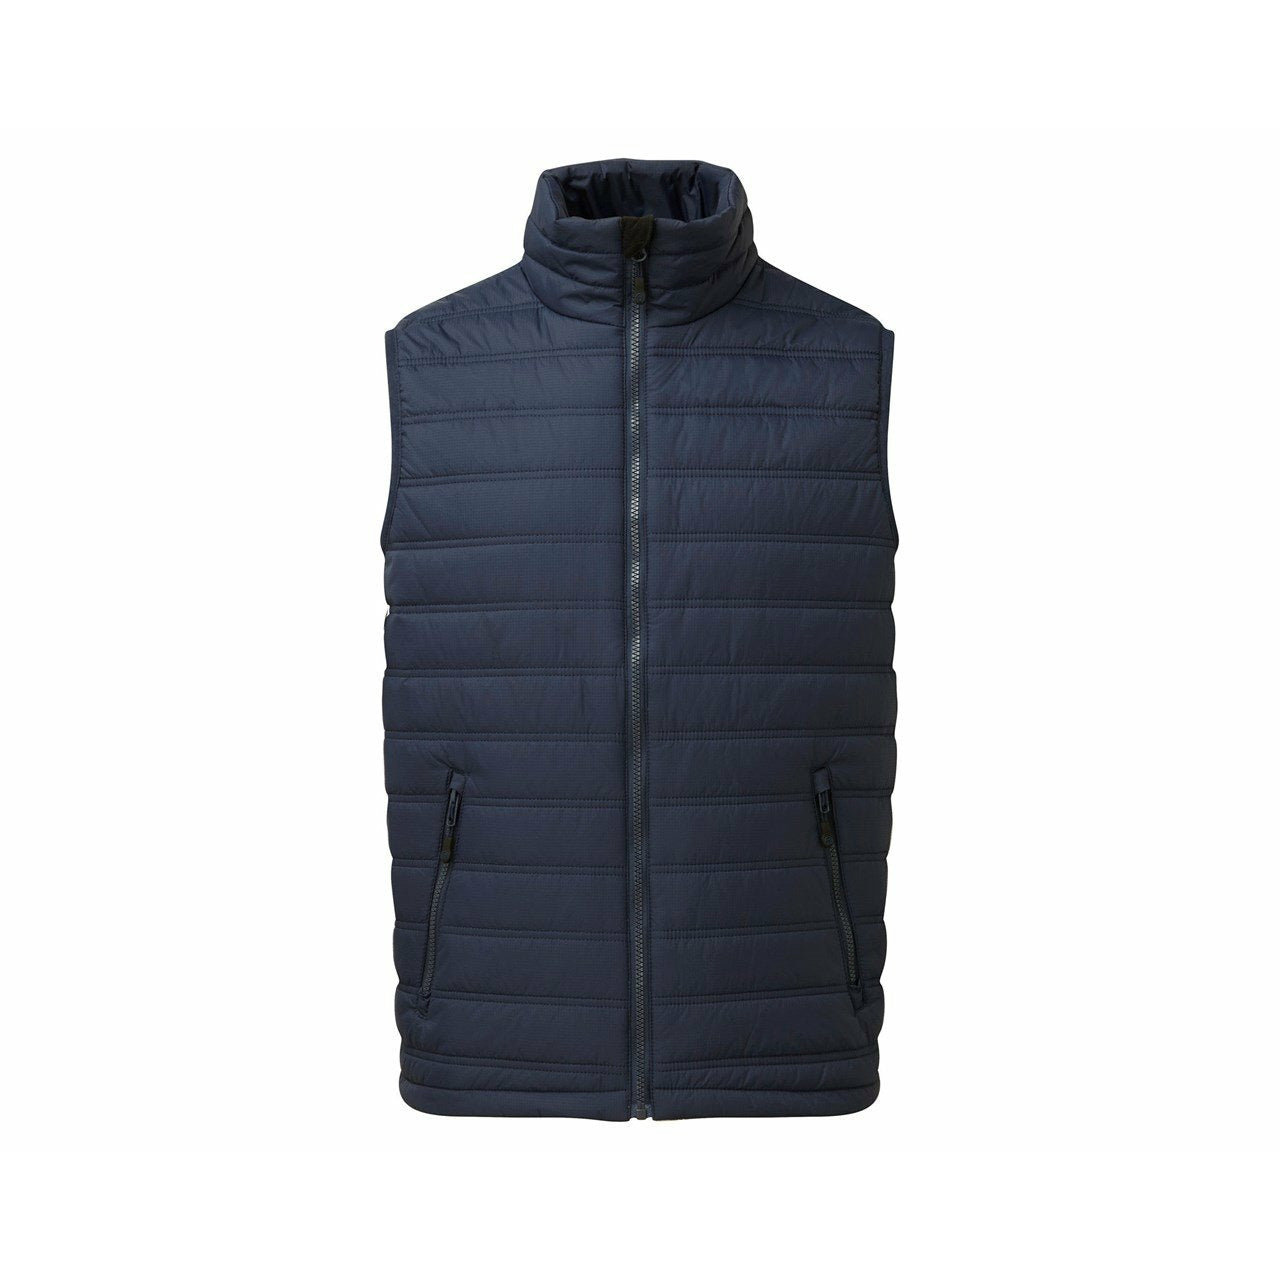 Tuffstuff Sutton Thermofort Bodywarmer